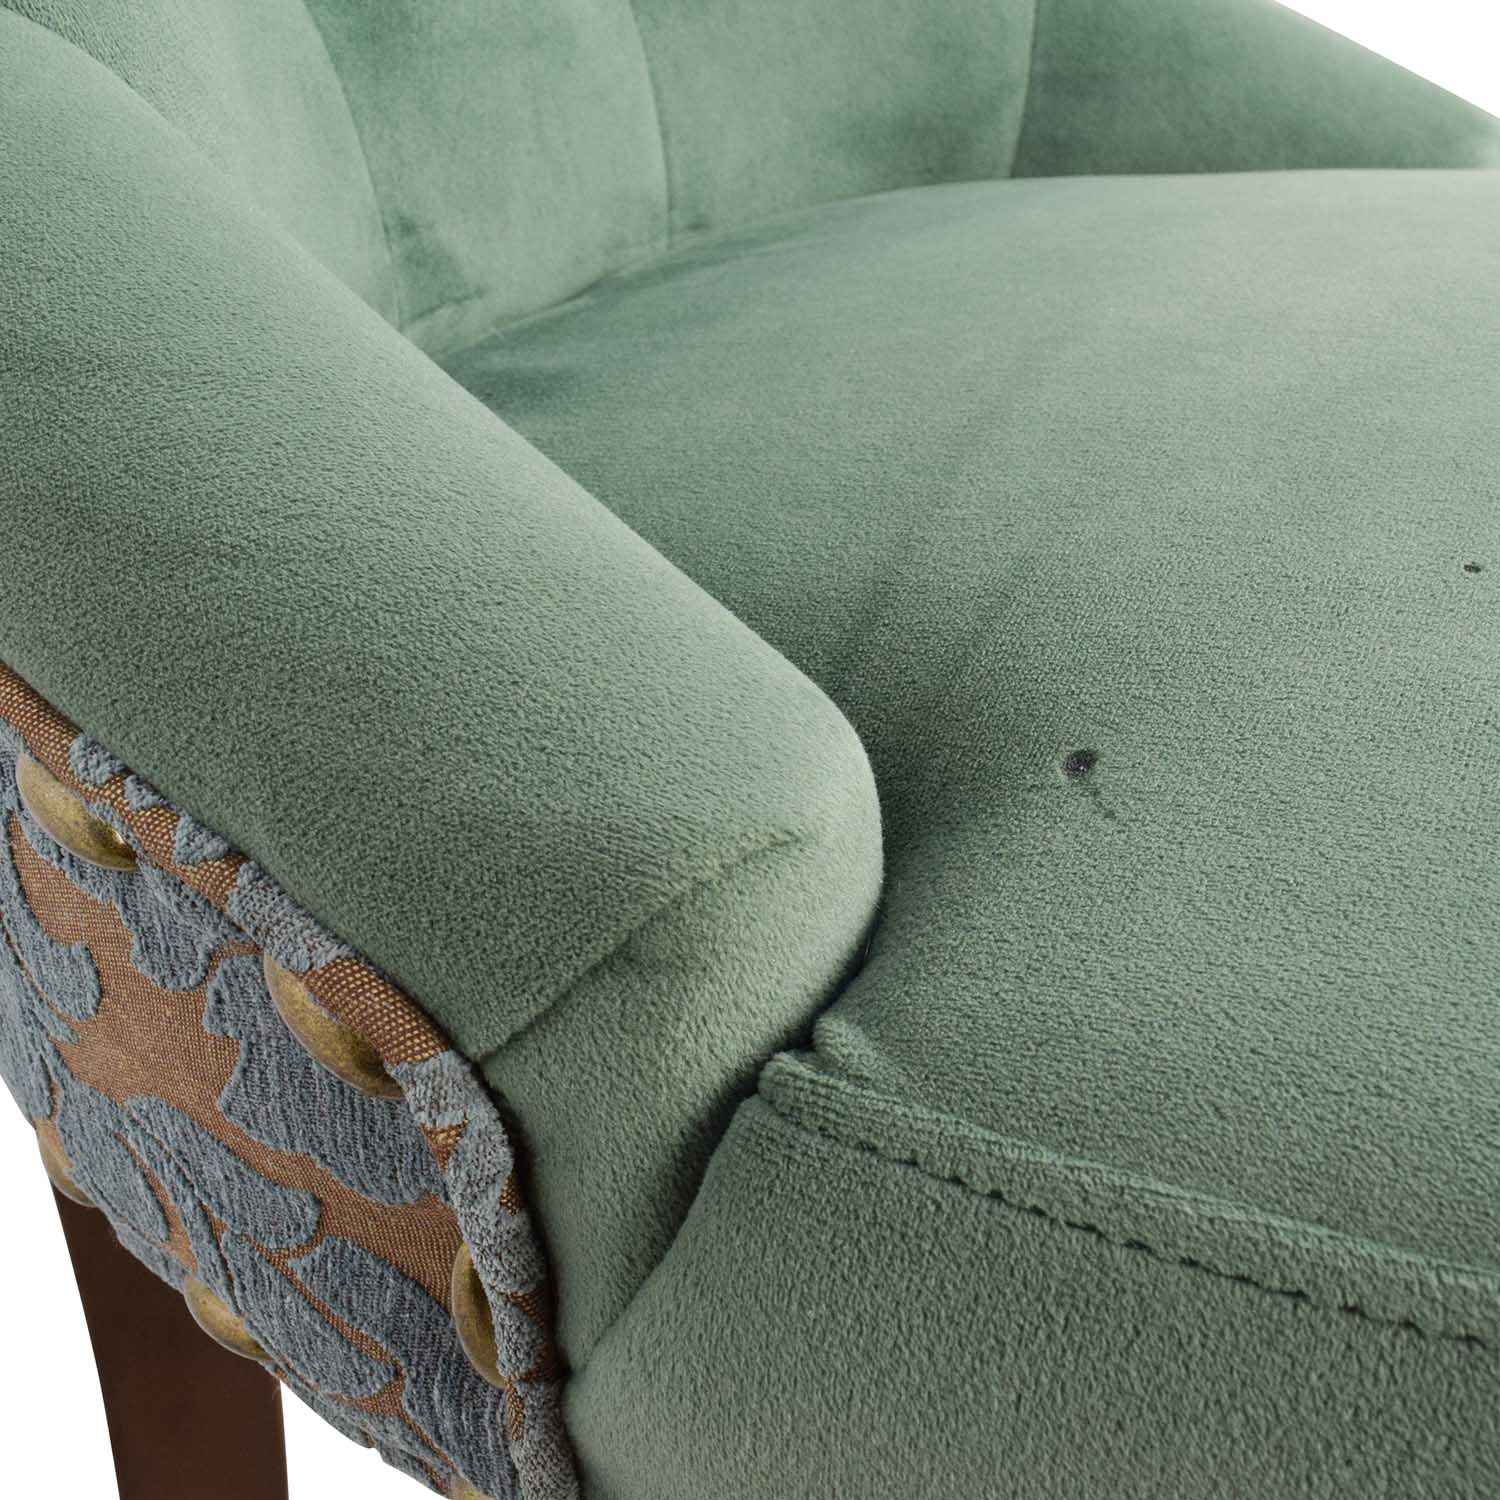 Elegant ... Shop Pier 1 Imports Hourglass Collection Chair Pier 1 Imports Chairs ...